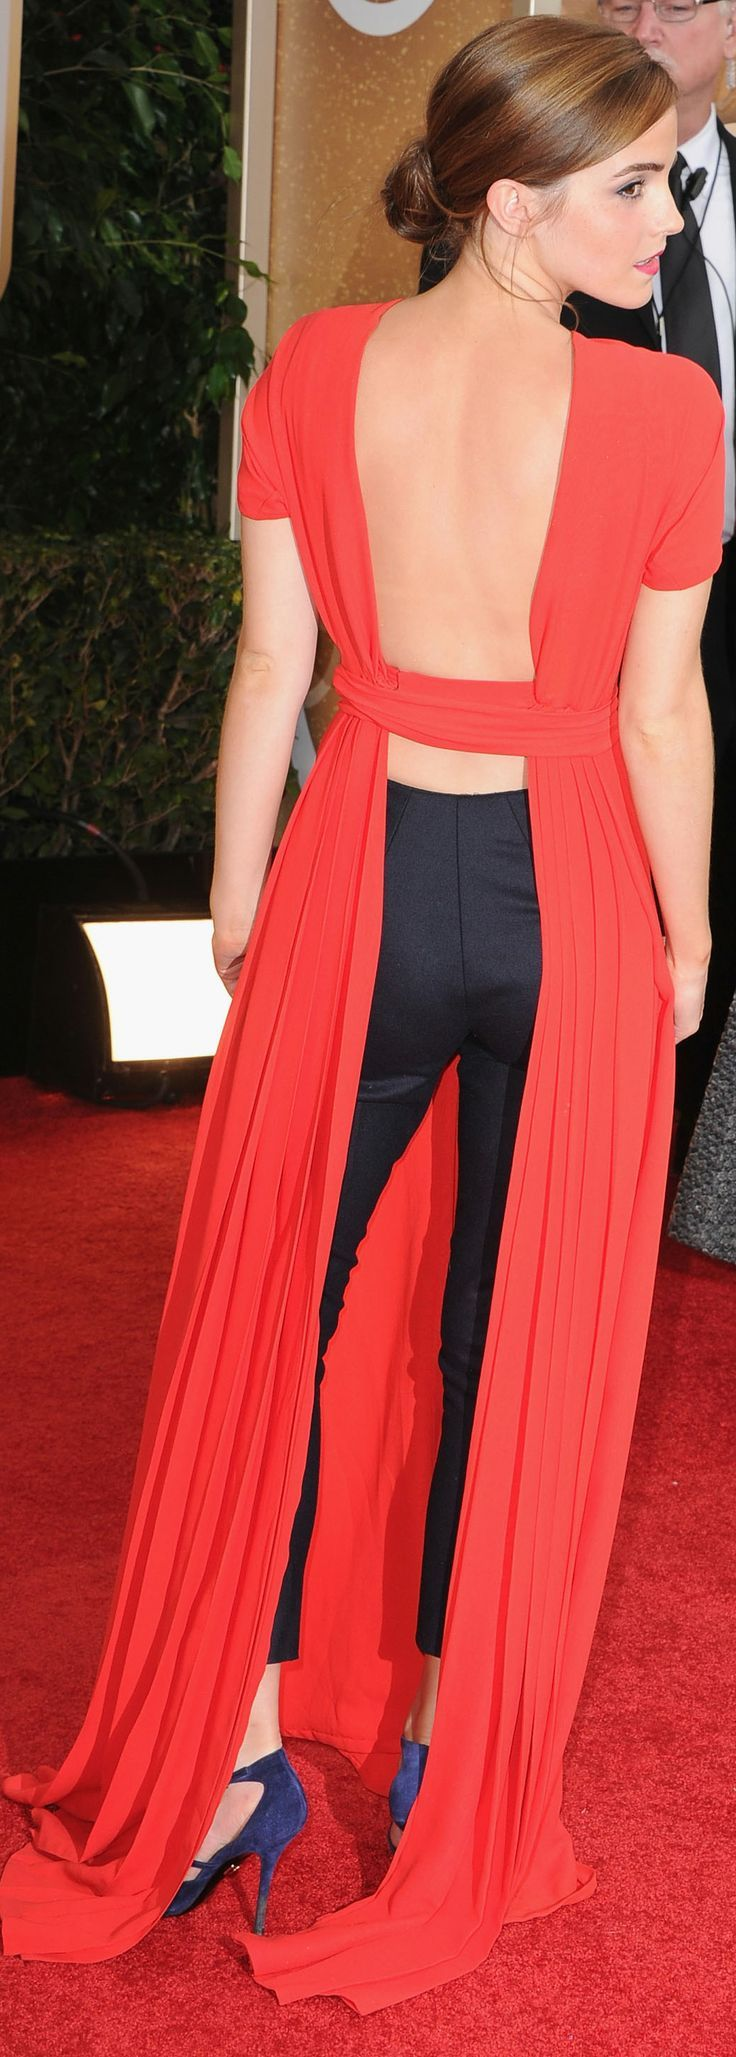 Emma Watson | Dior backless dress over perfectly tailored pants. Inspiration for my forthcoming jewellery range